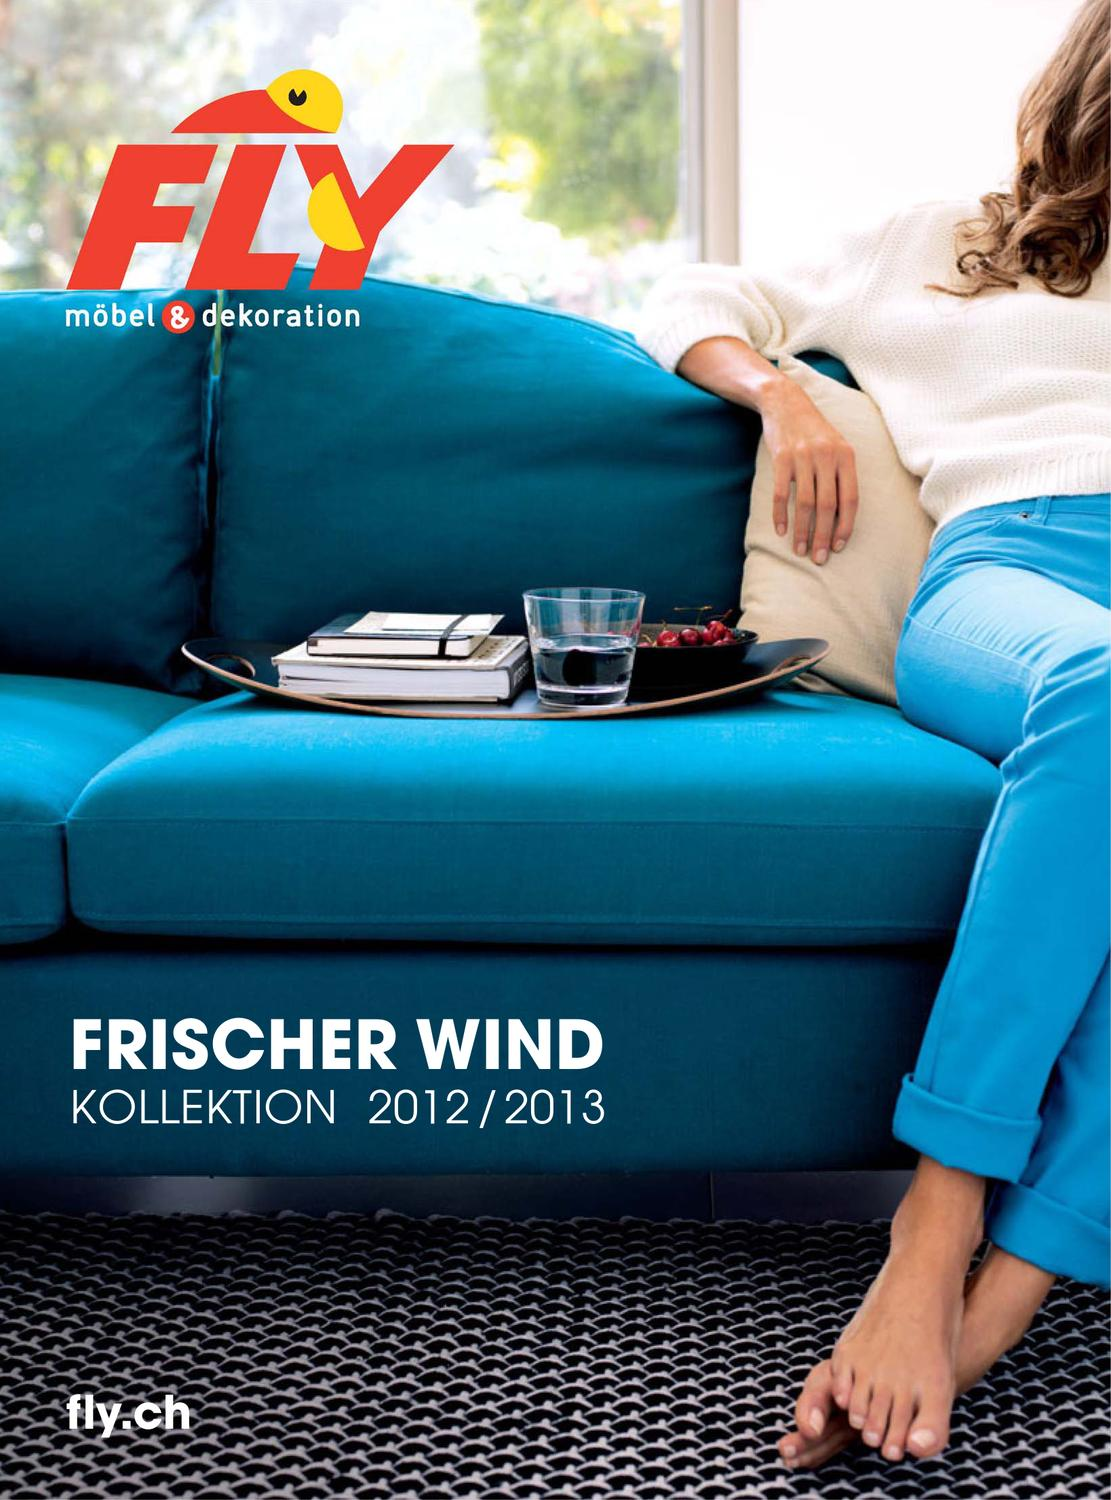 Fly Furniture Catalogue 2012 2013 By Wang Elly Issuu